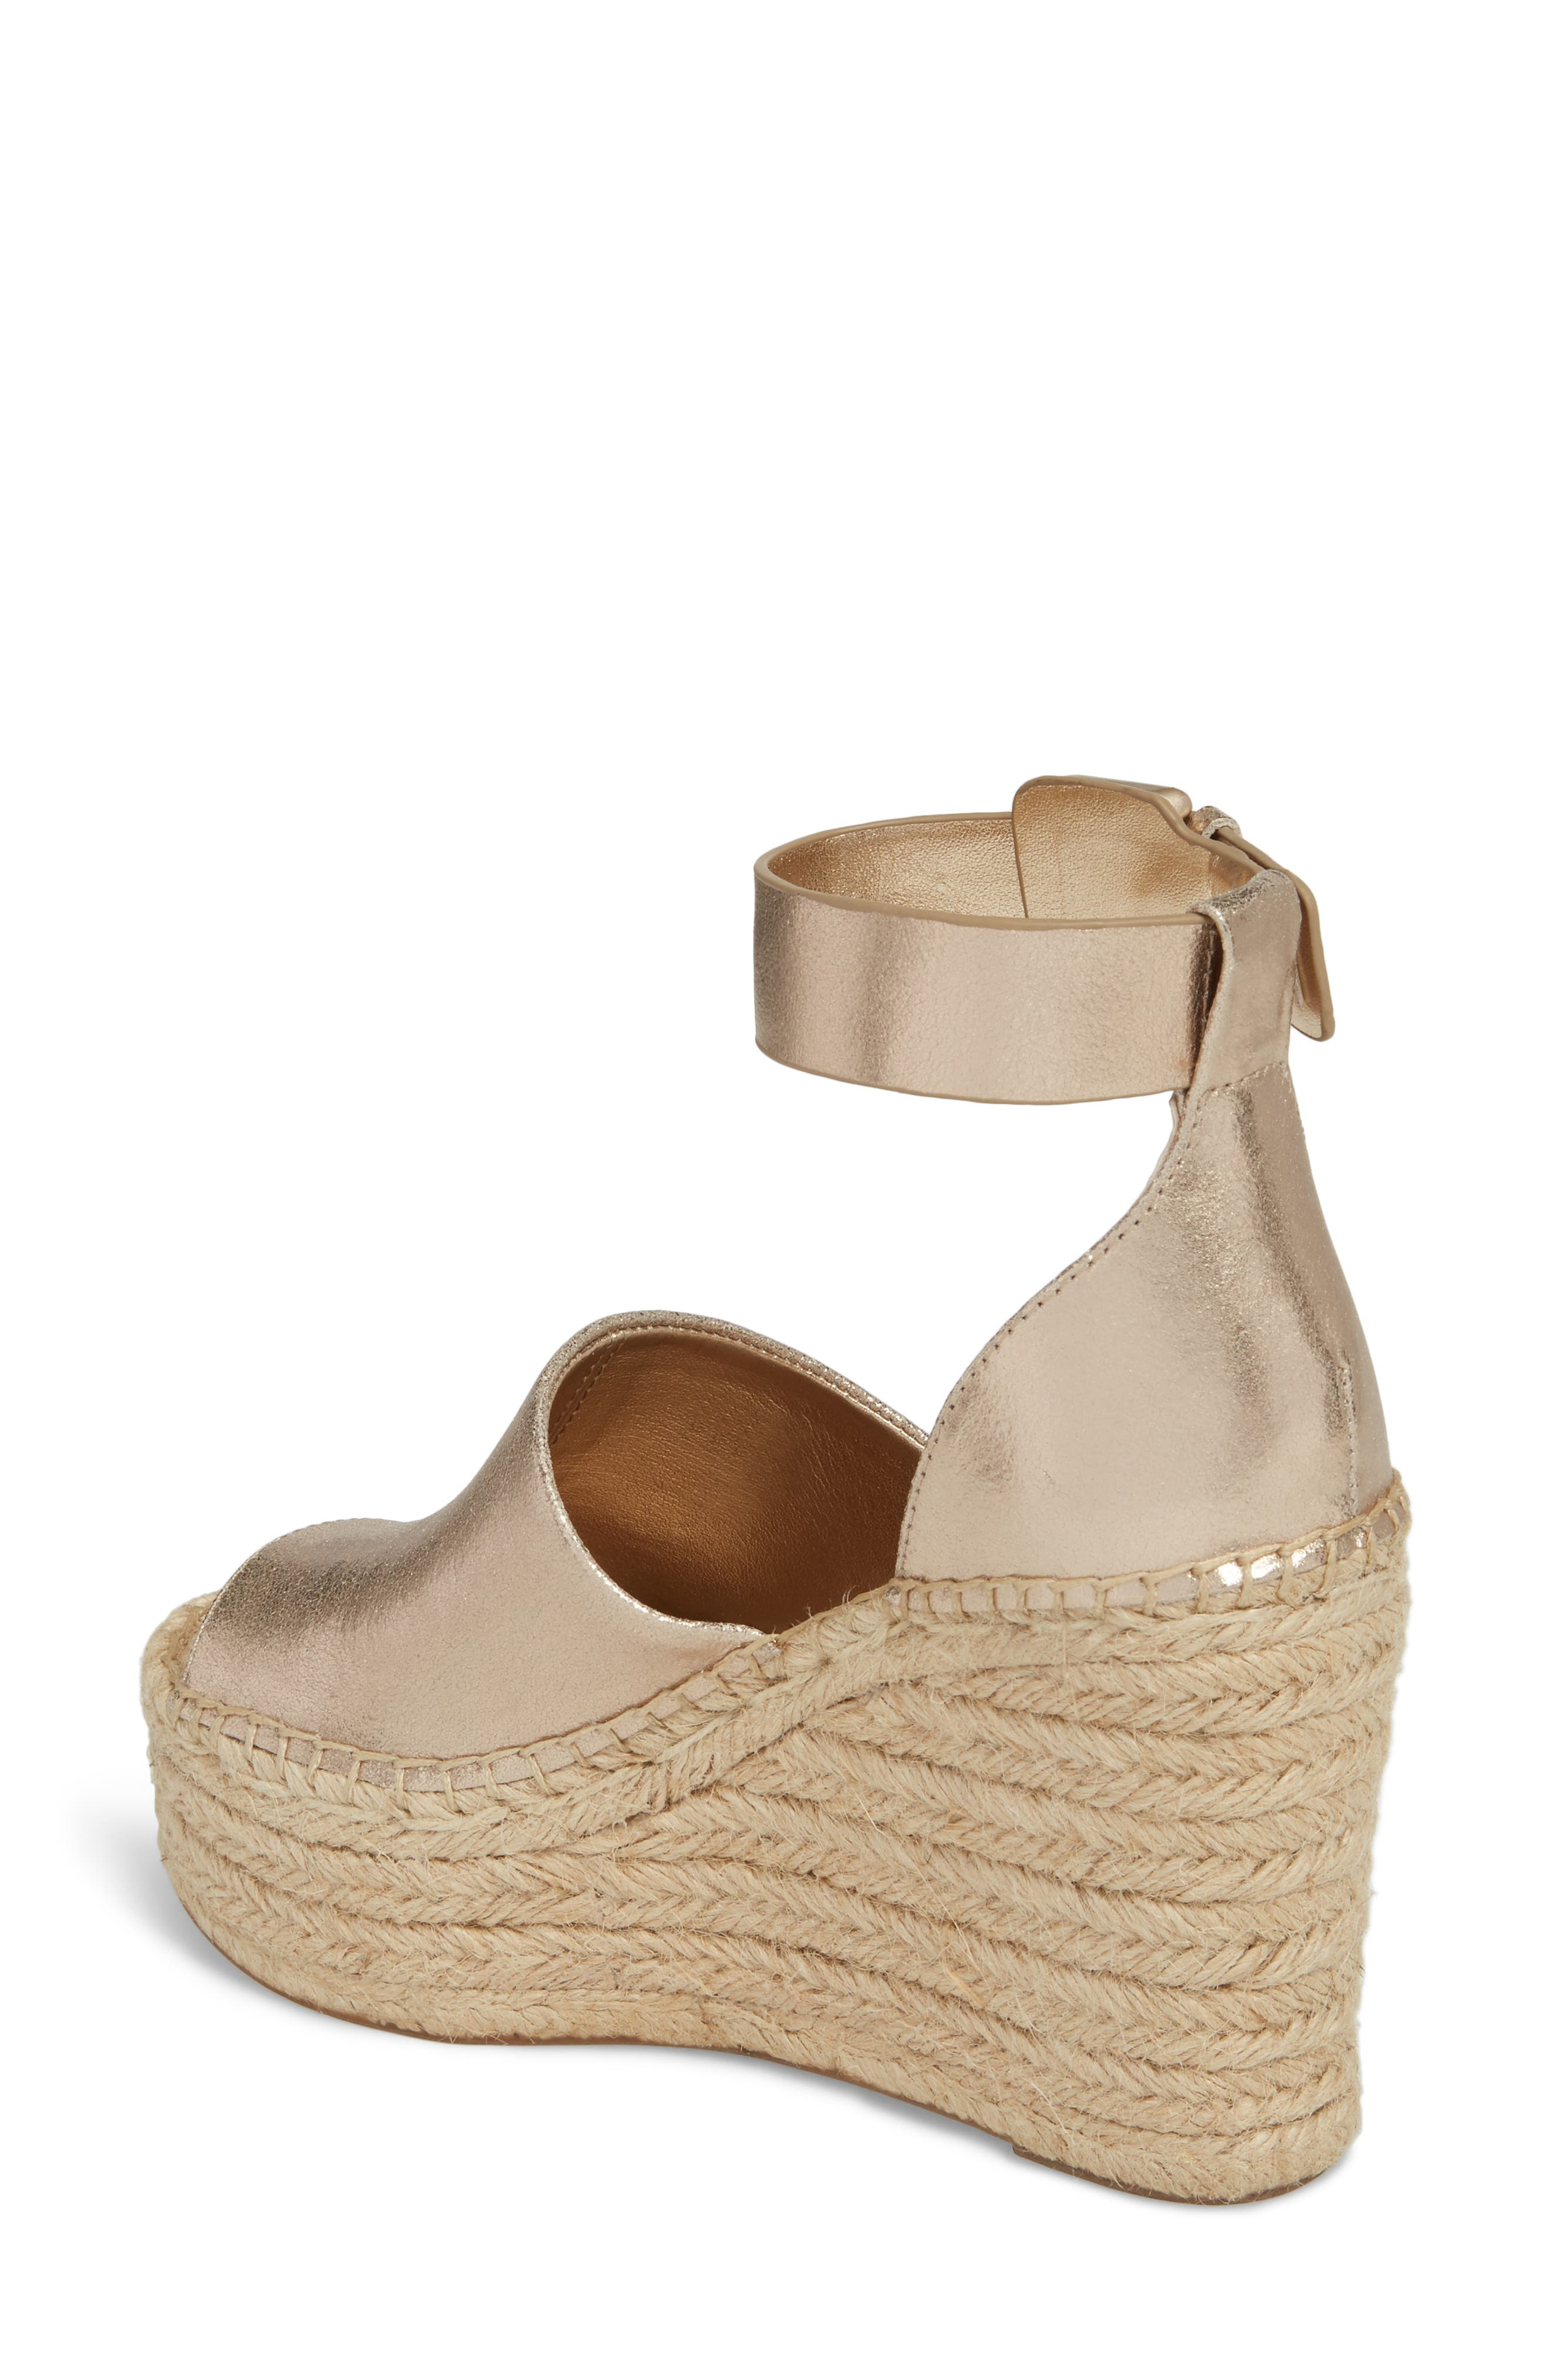 Adalyn Espadrille Wedge Sandal,                             Alternate thumbnail 2, color,                             Gold Leather